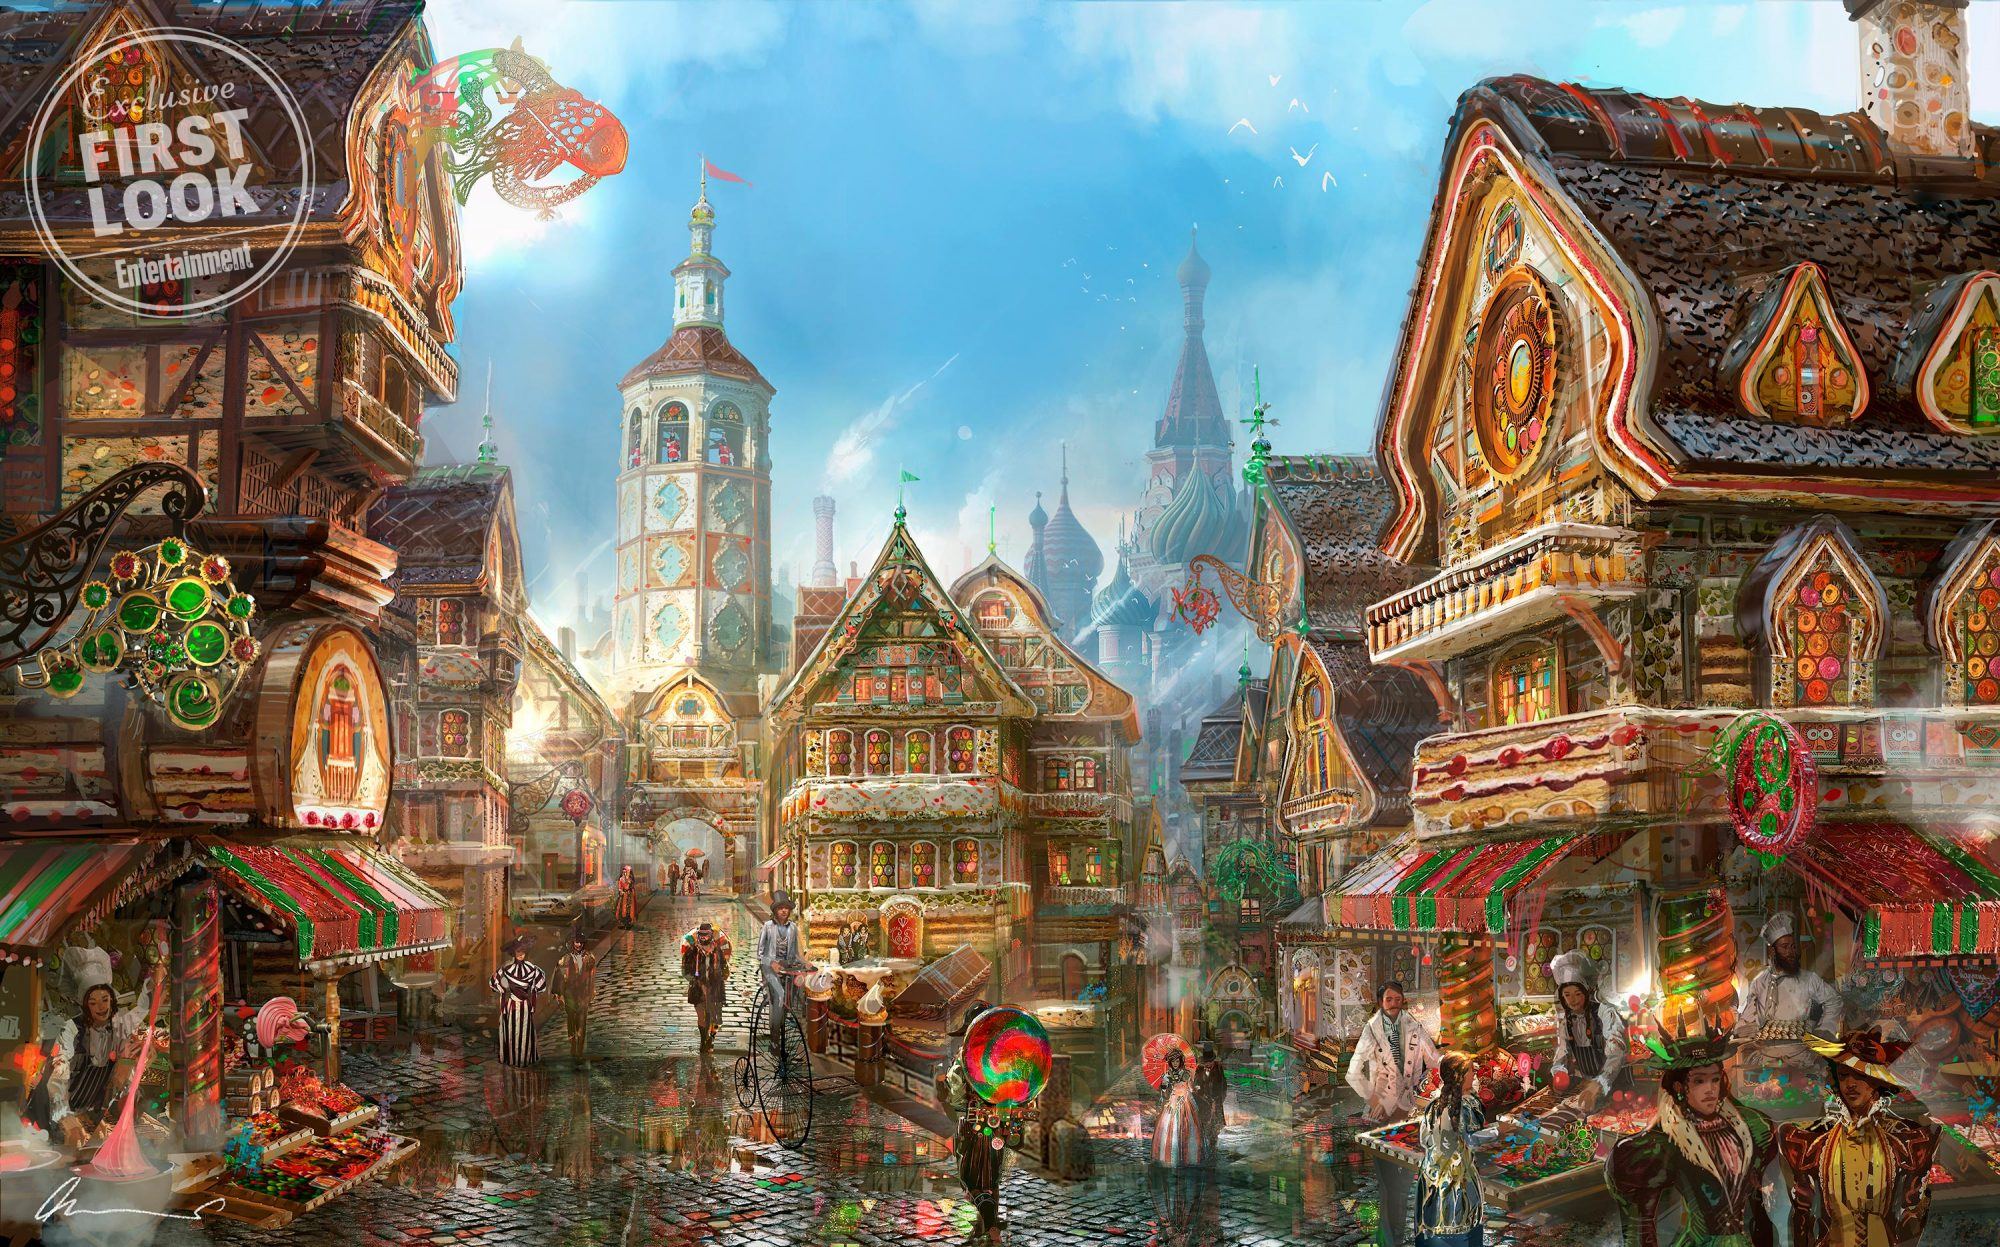 THE NUTCRACKER AND THE FOUR REALMSConcept art of the Land of the Sweets